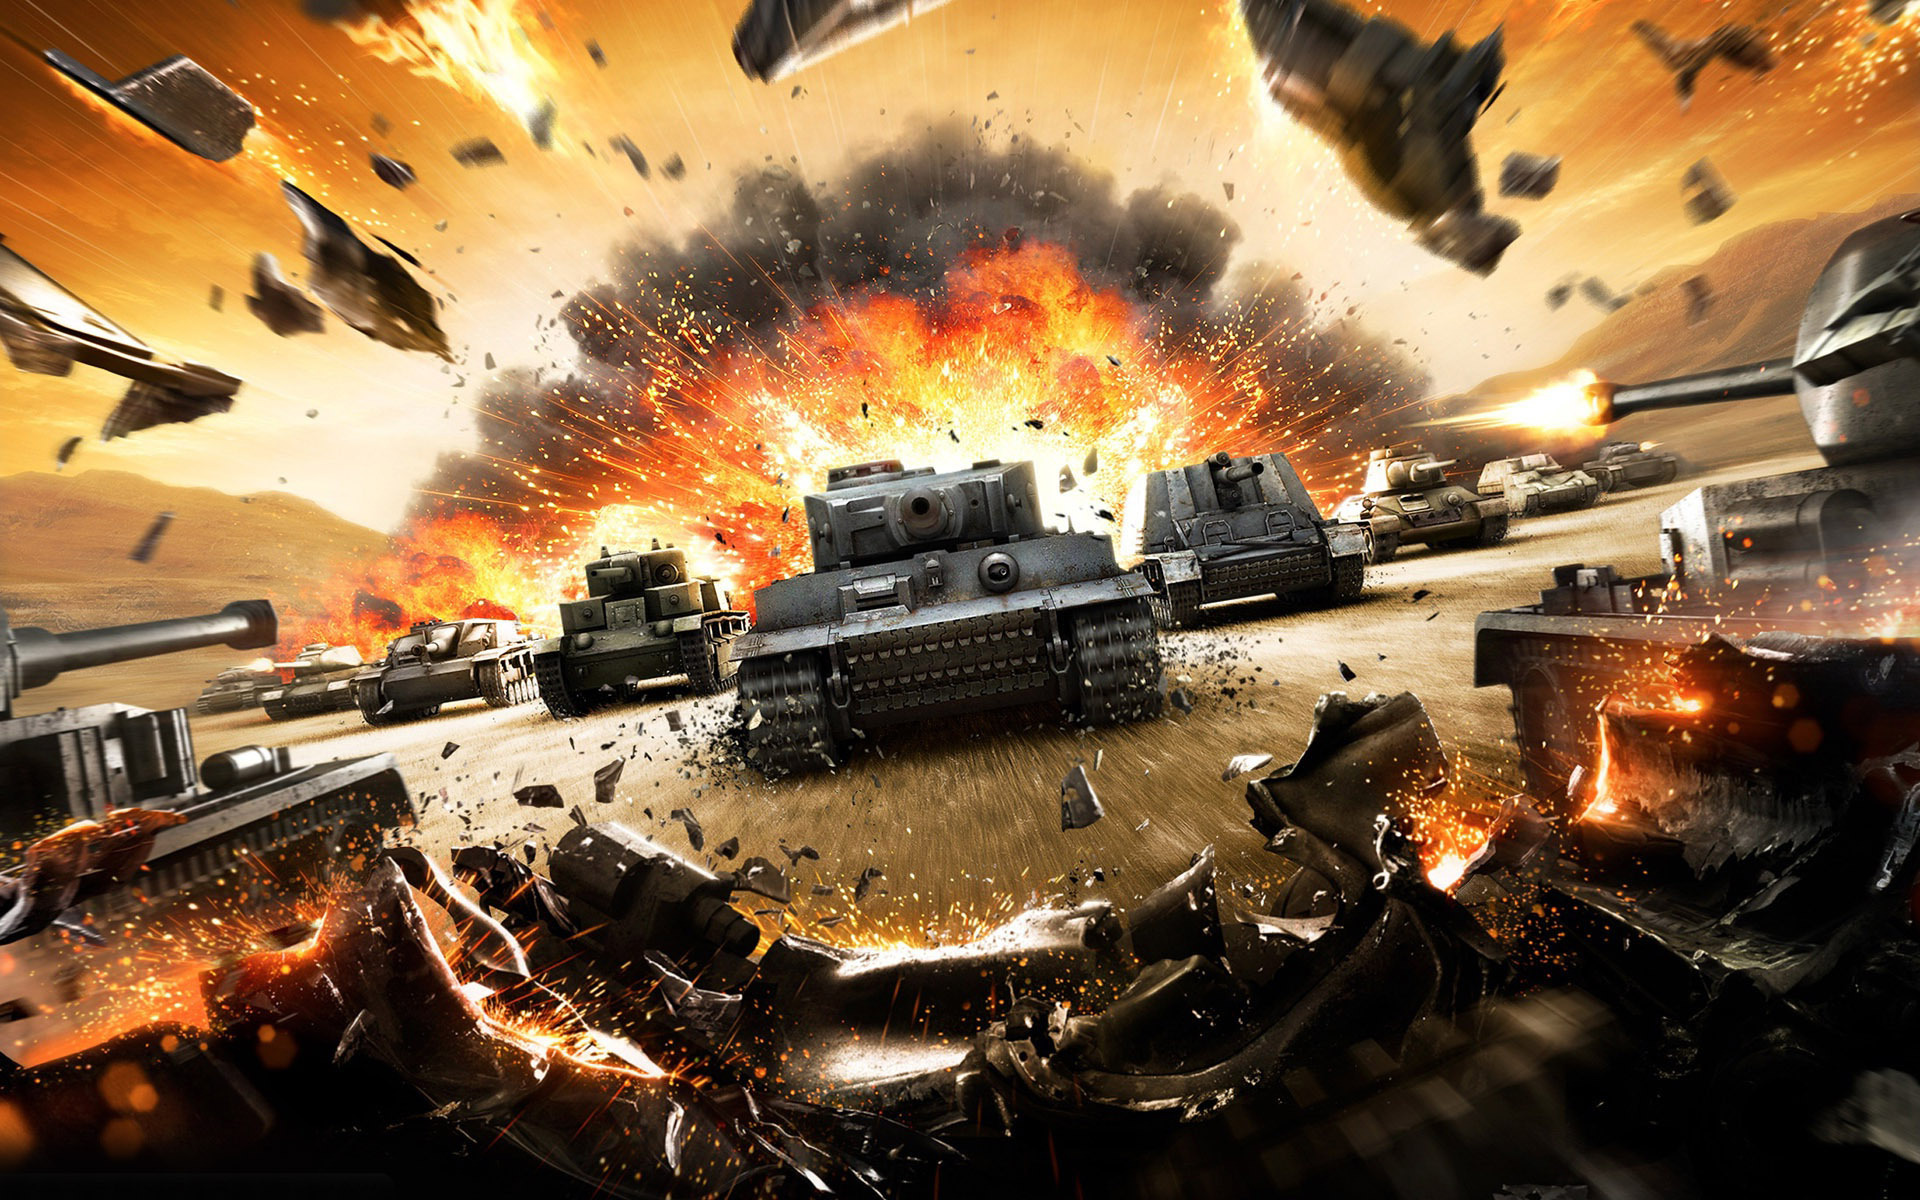 World Of Tanks Wallpaper 9099 1920x1200 - uMad com